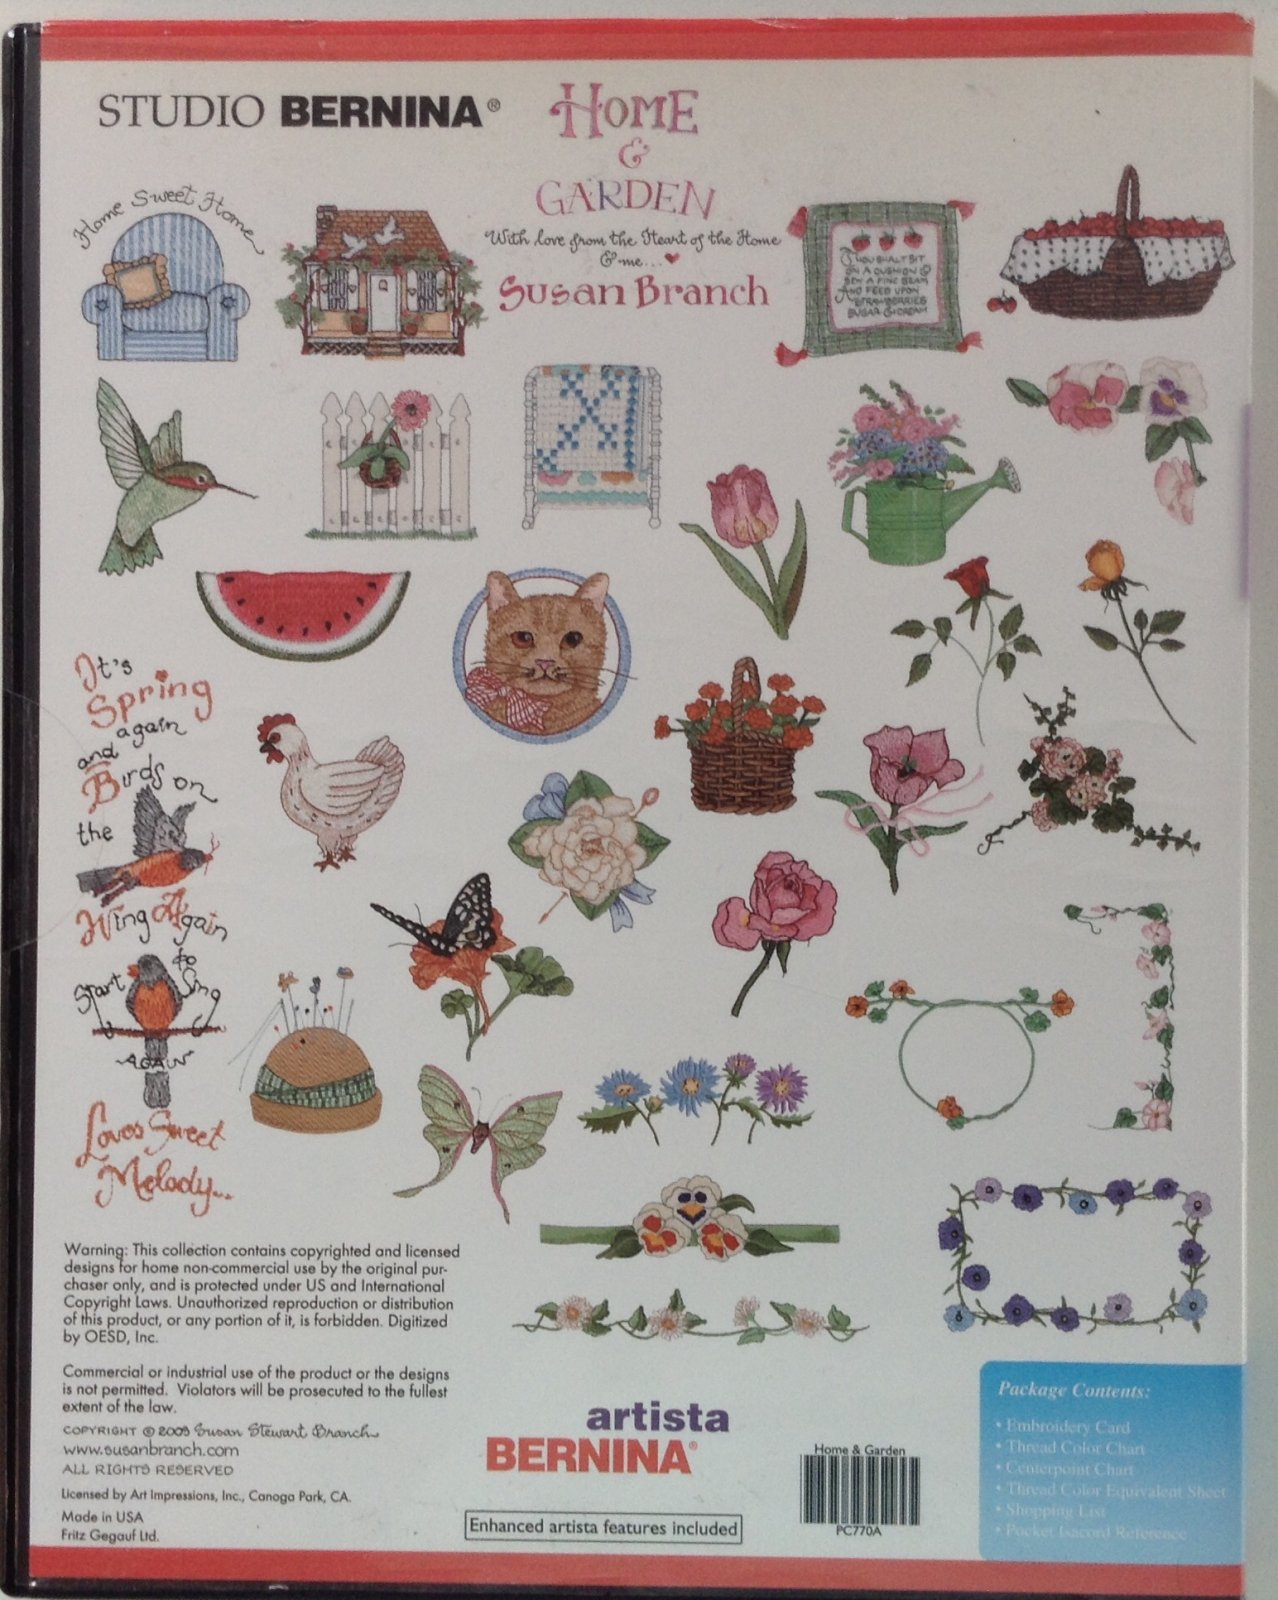 Home and Garden by Susan Branch, design card